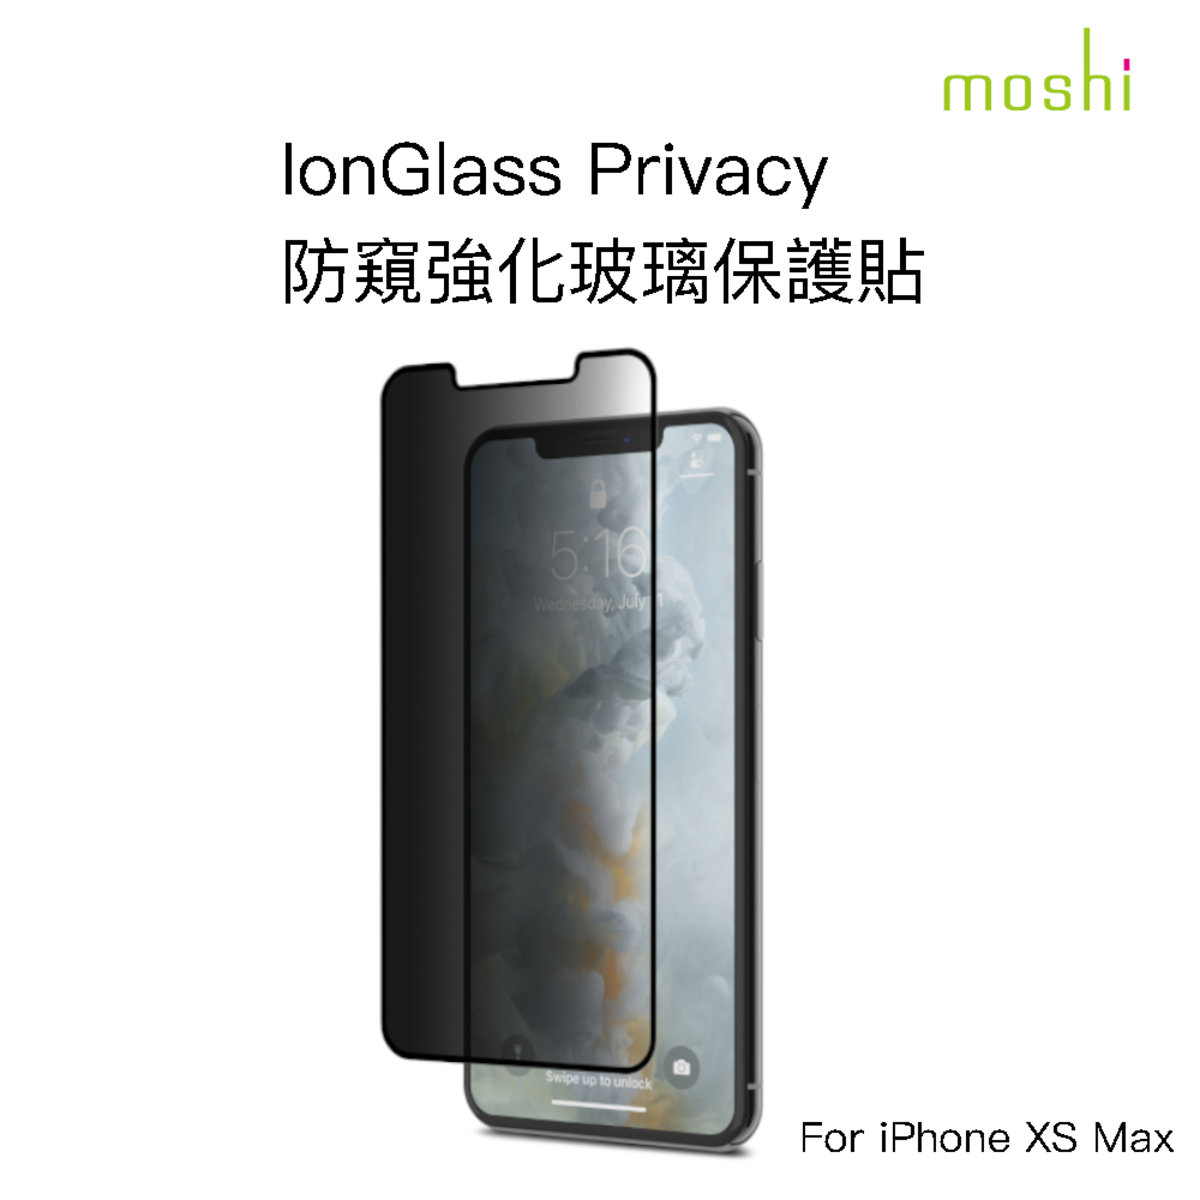 IonGlass Privacy Screen Protector for iPhone XS Max 99MO115002